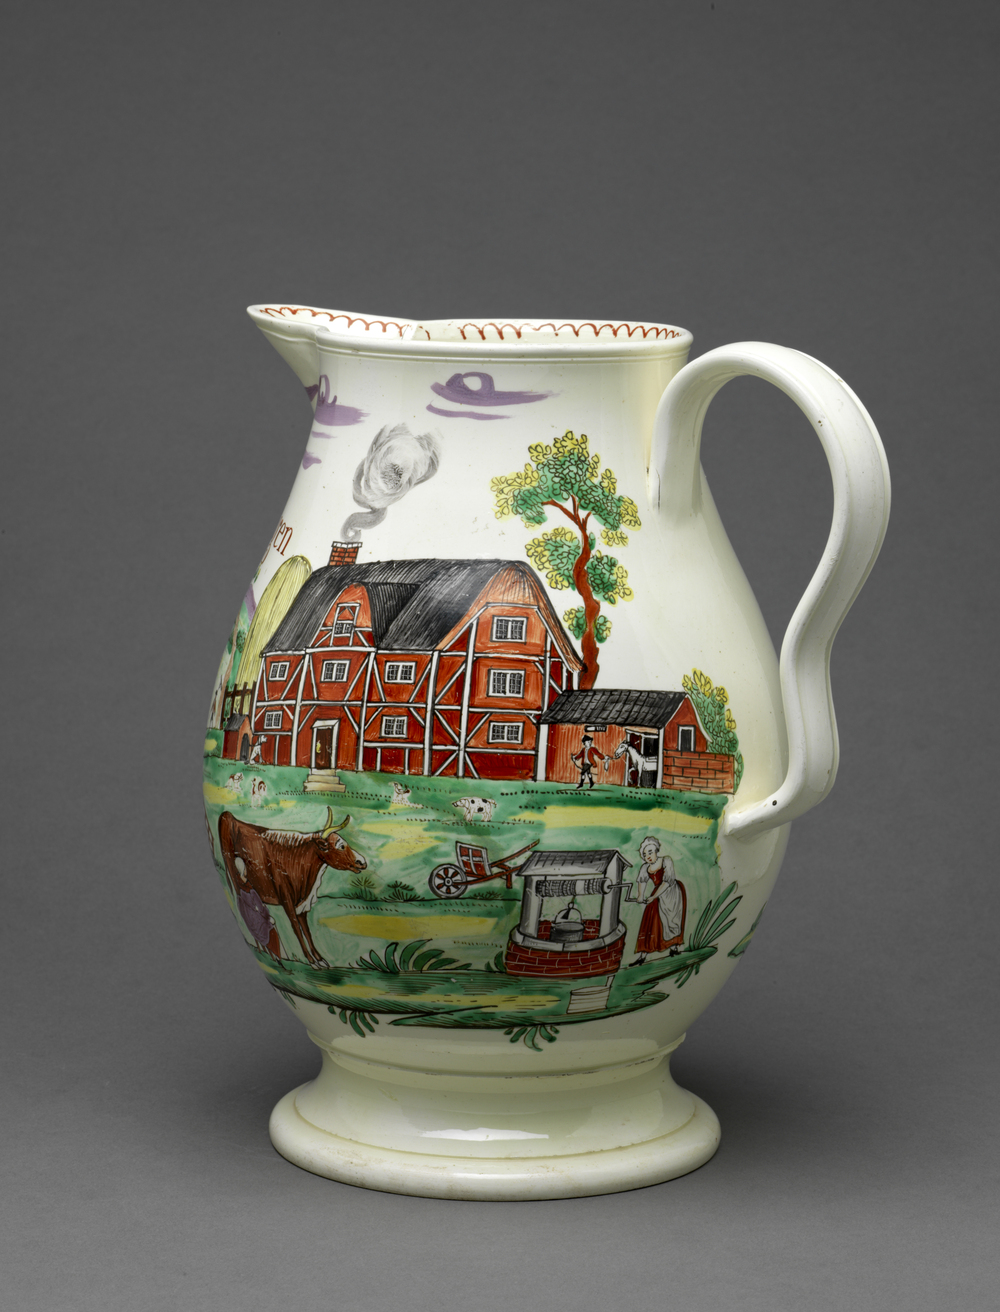 John Bridgen's jug with a farmyard scene